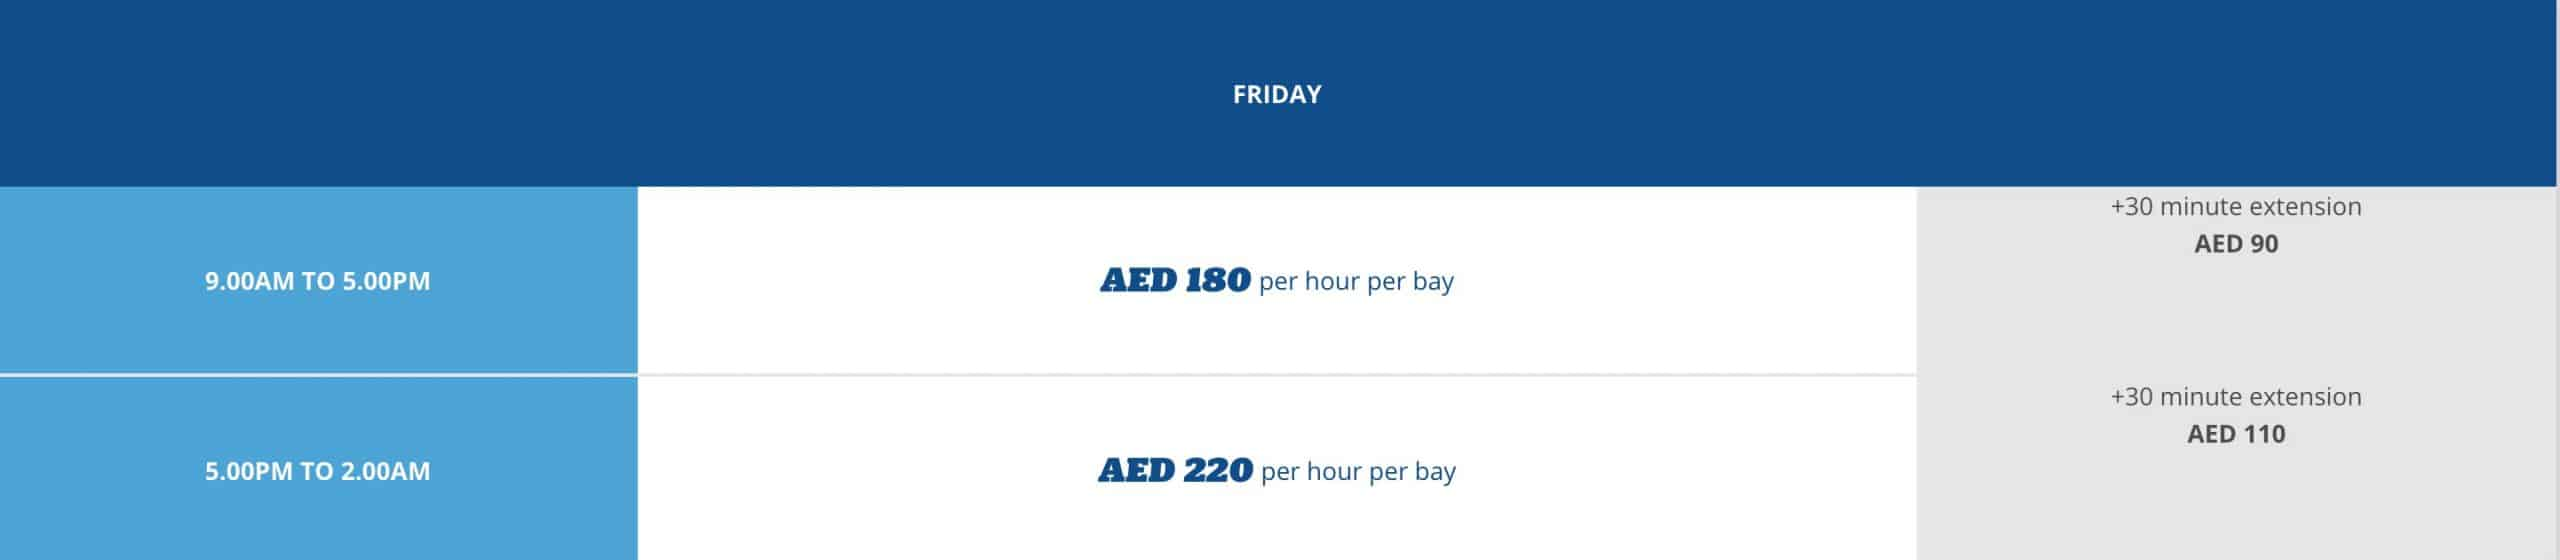 FRIDAY: 9 am – 5 pm: AED 180 PER HOUR PER BAY NOTE: AED 90 FOR EXTRA 30 MINS 5 pm – 2 am: AED 220 PER HOUR PER BAY NOTE: AED 110 FOR 30 EXTRA MINS